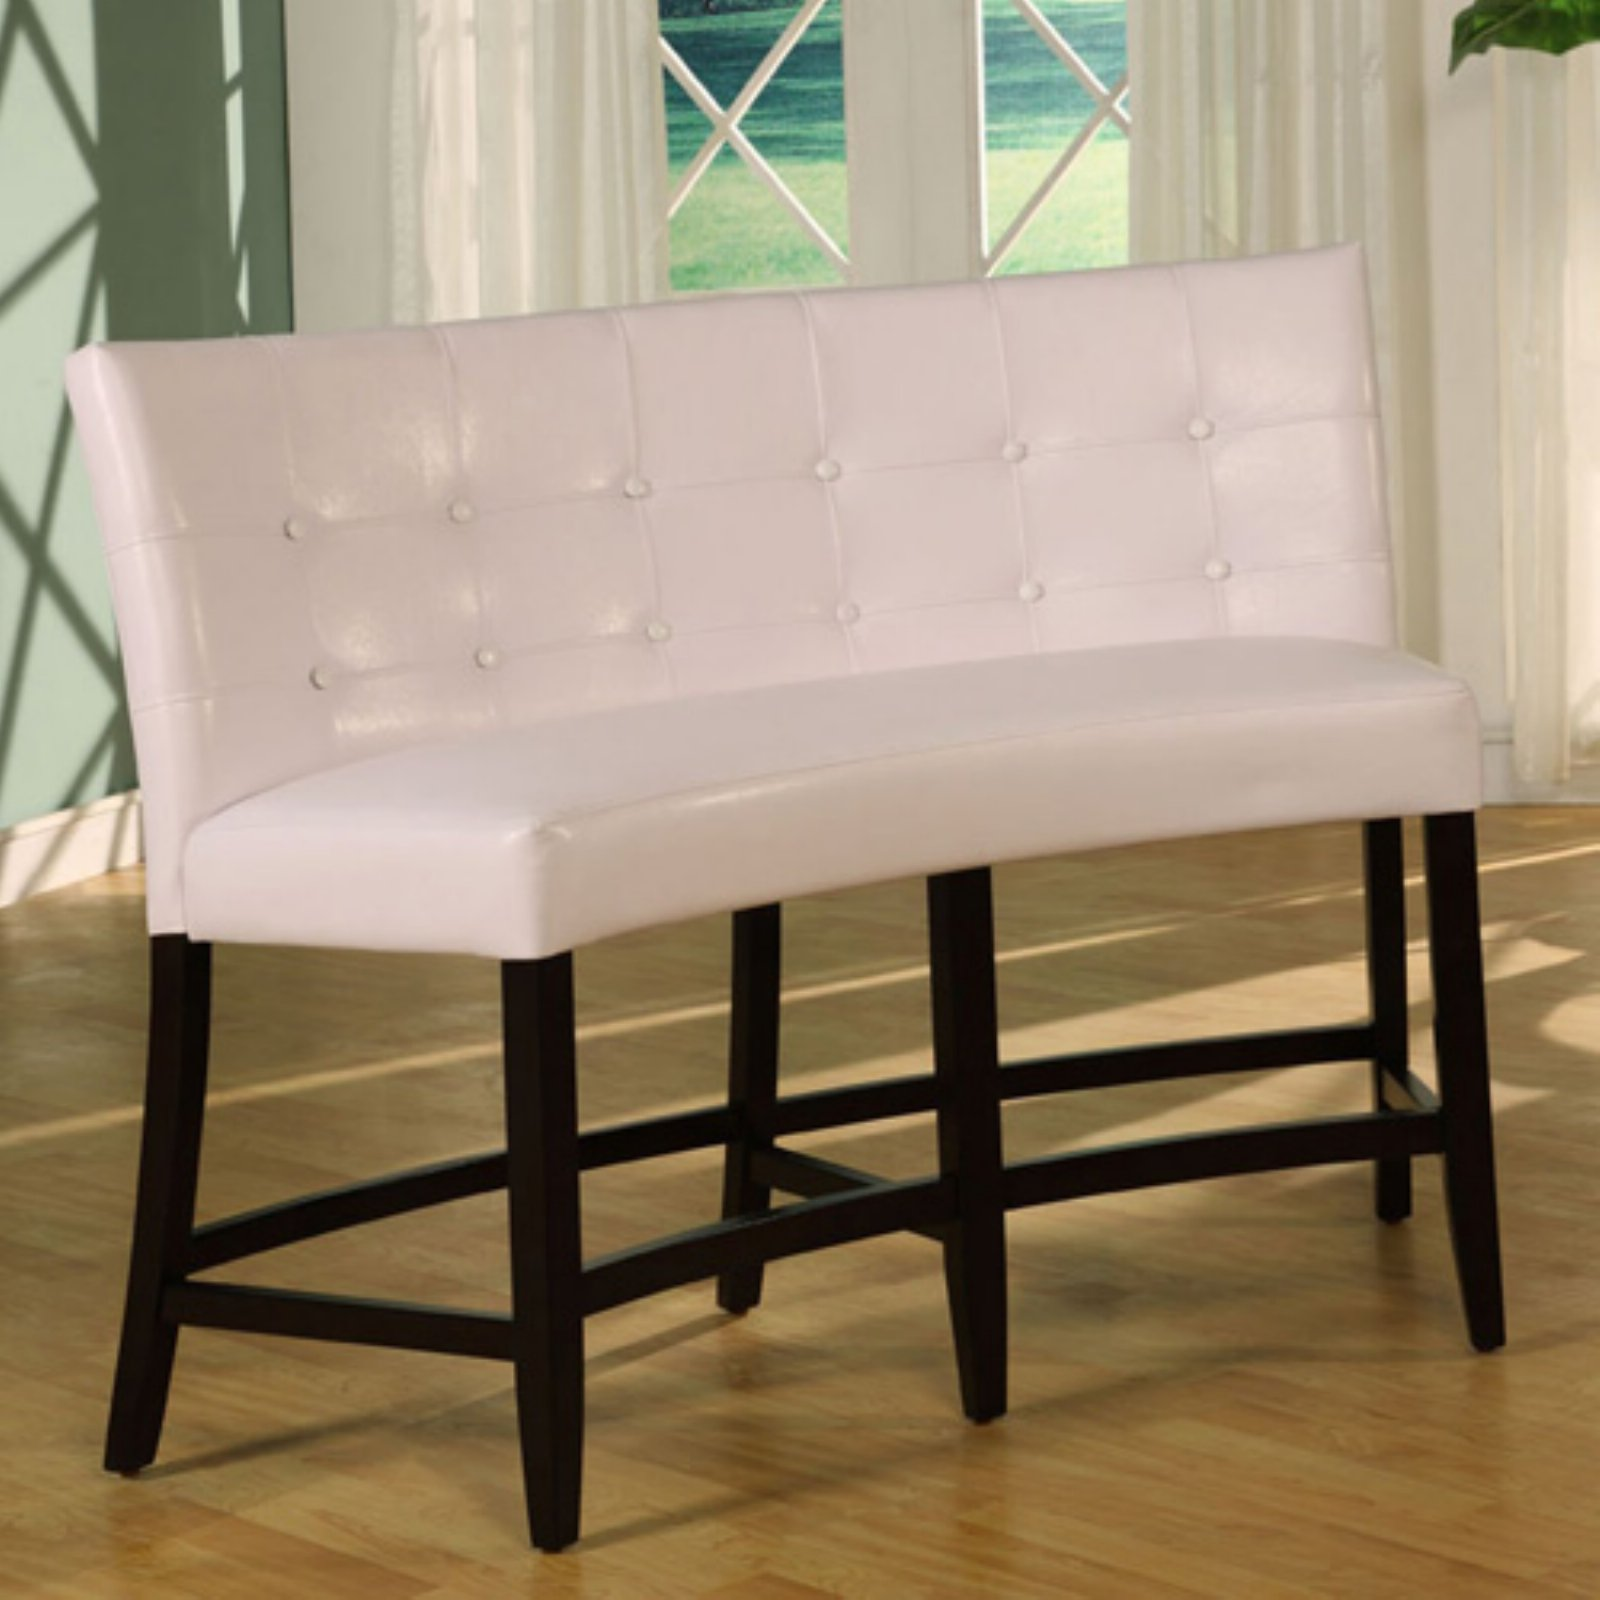 Modus Furniture Bossa Counter Height Banquette - White Le...